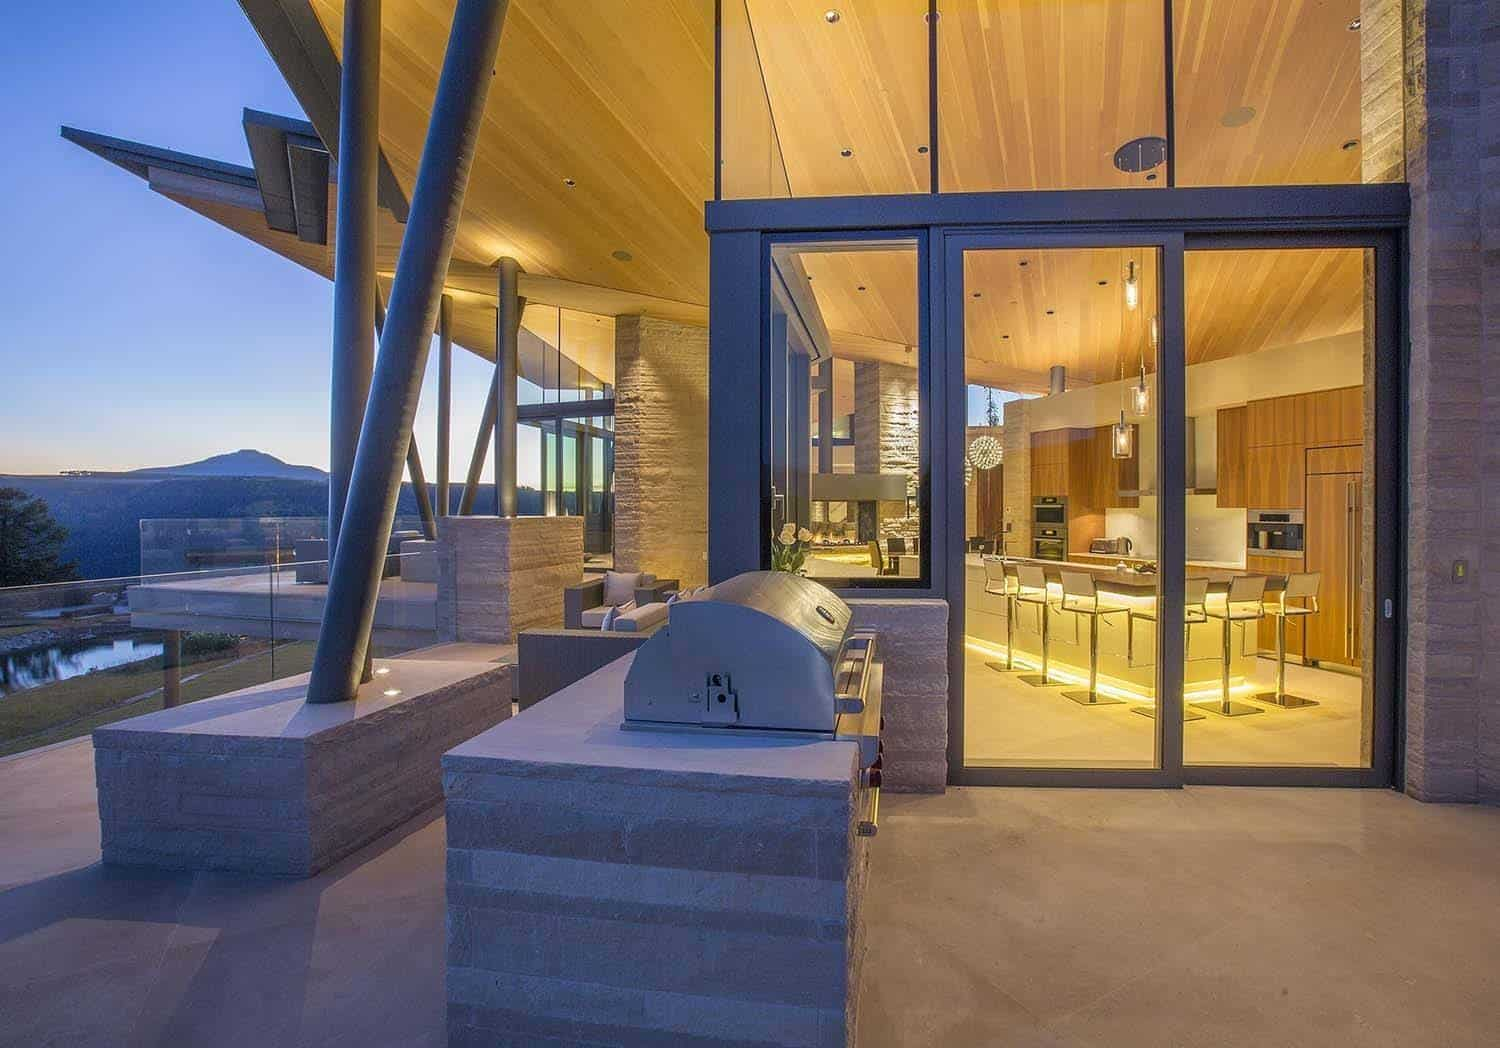 Modern-Residence-Colorado-Poss Architecture-23-1 Kindesign